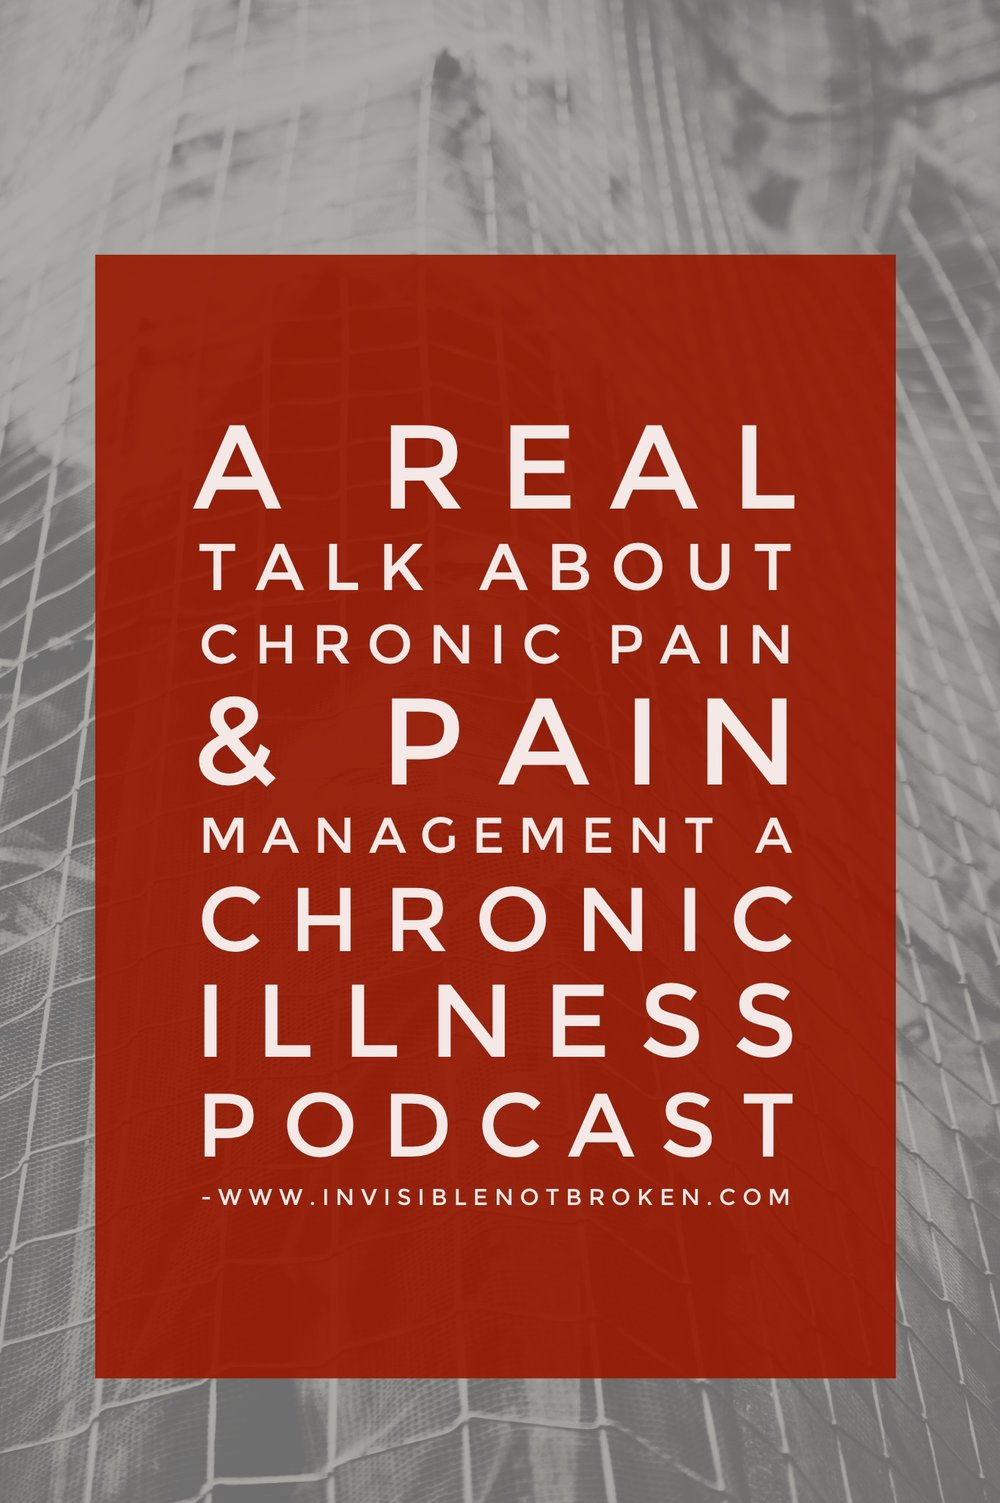 A Chronic Illness Podcast About Chronic Pain Management